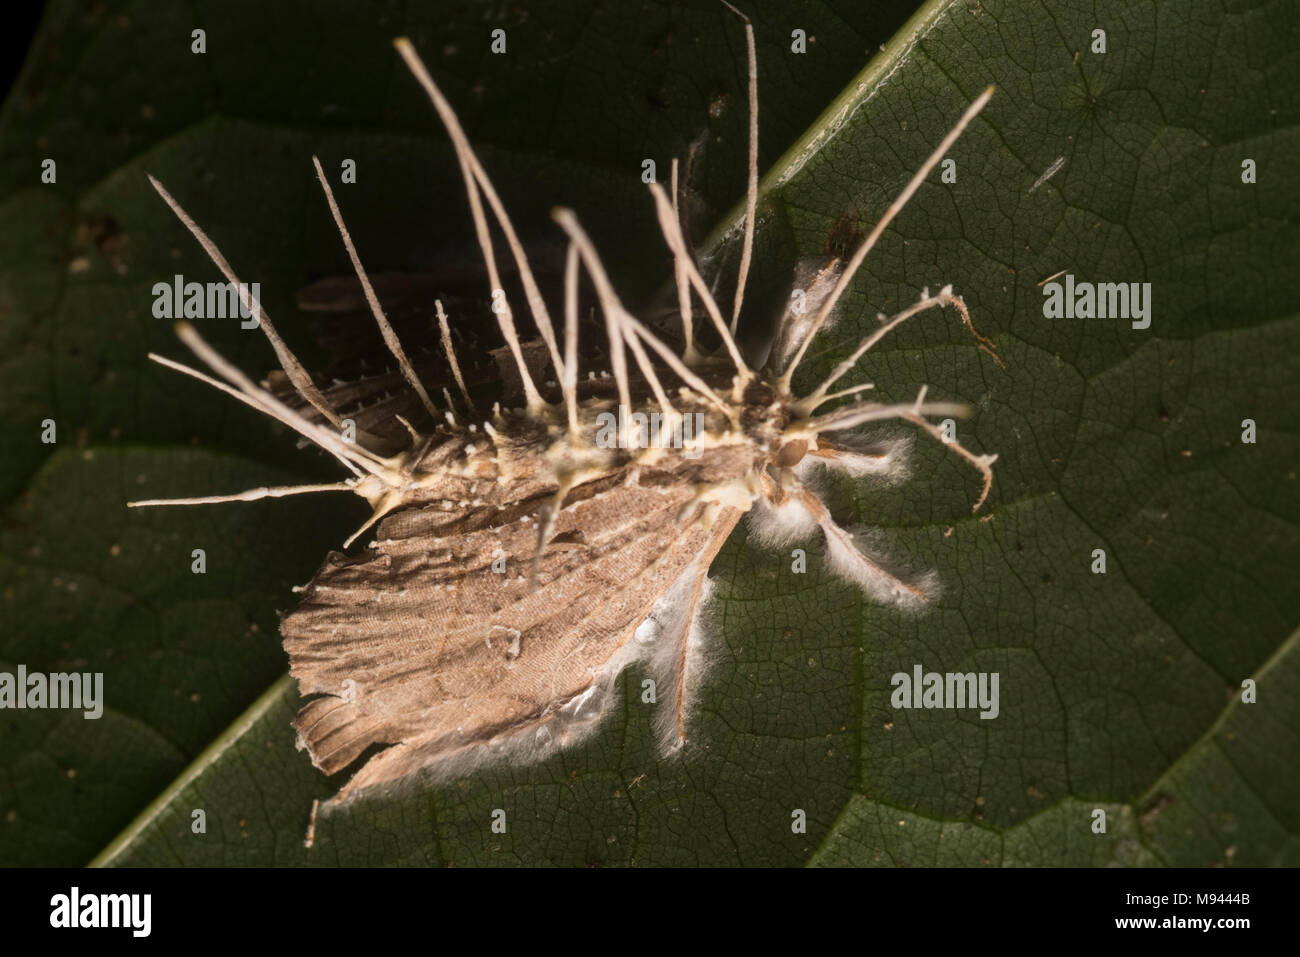 A Cordyceps fungi has taken over and killed this moth and now produces fruiting bodies from its carcass. - Stock Image